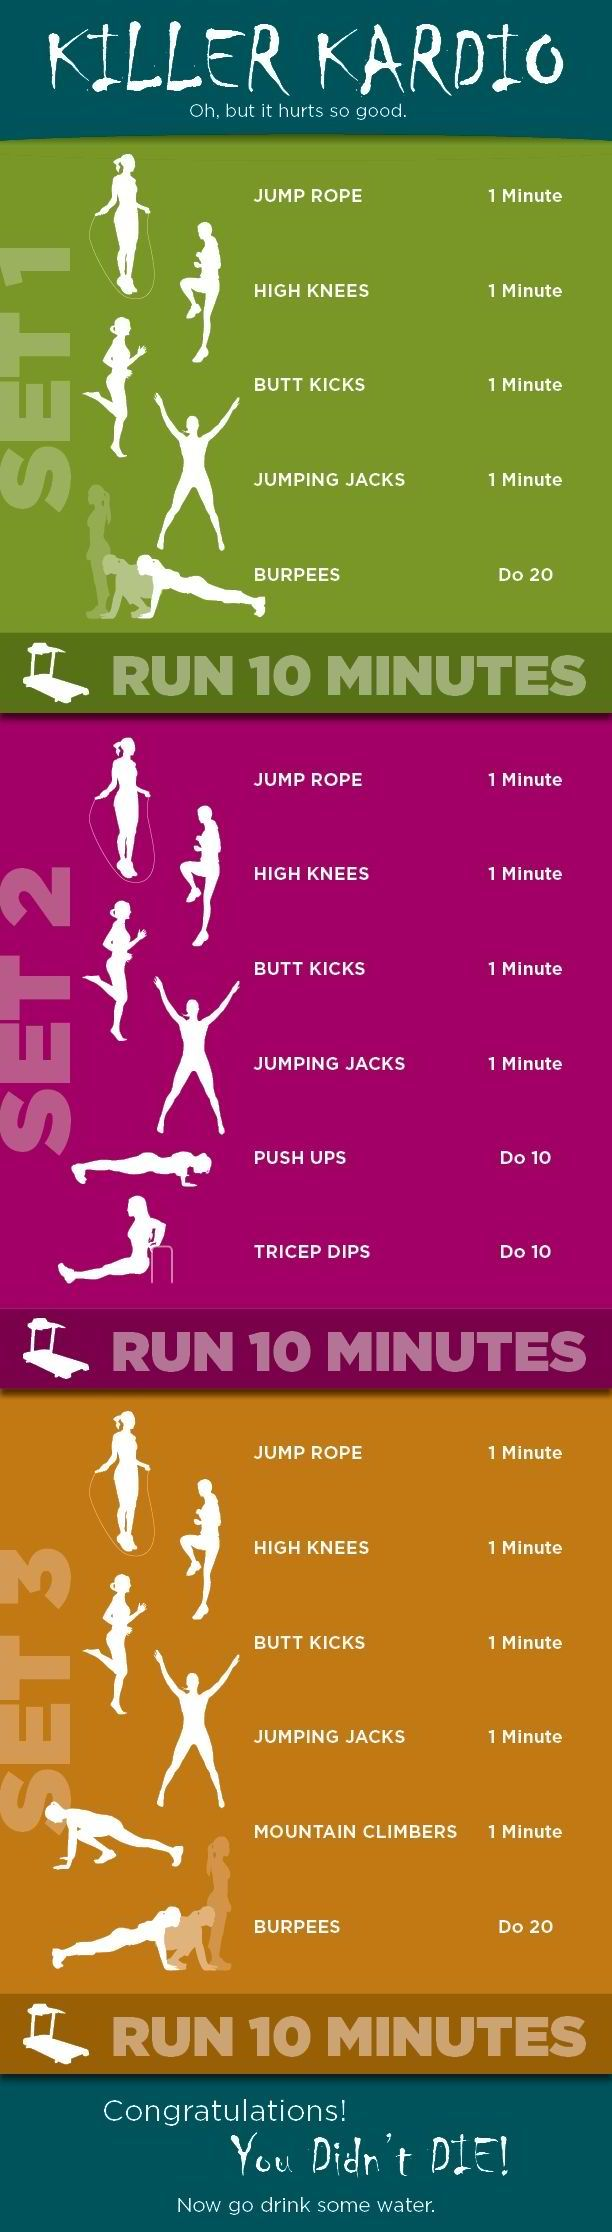 Need to do this.. might modify it a bit (running and jumprope) due to lack of space